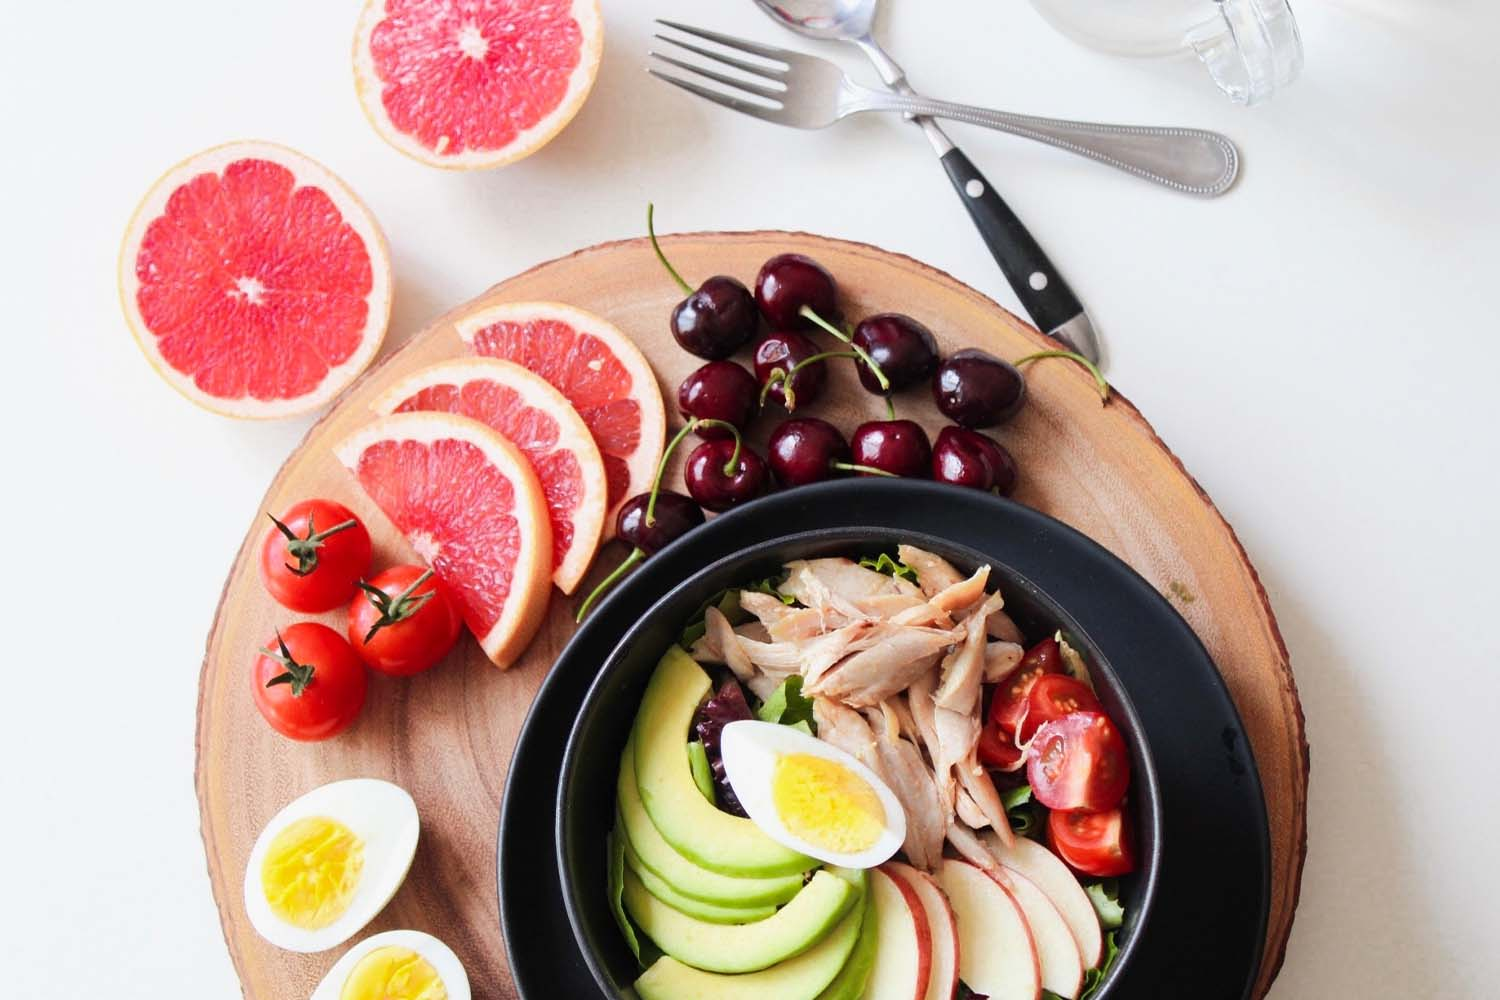 fruit-bowl-garden-to-table-an-extension-of-your-kitchen-alair-cuyahoga-falls